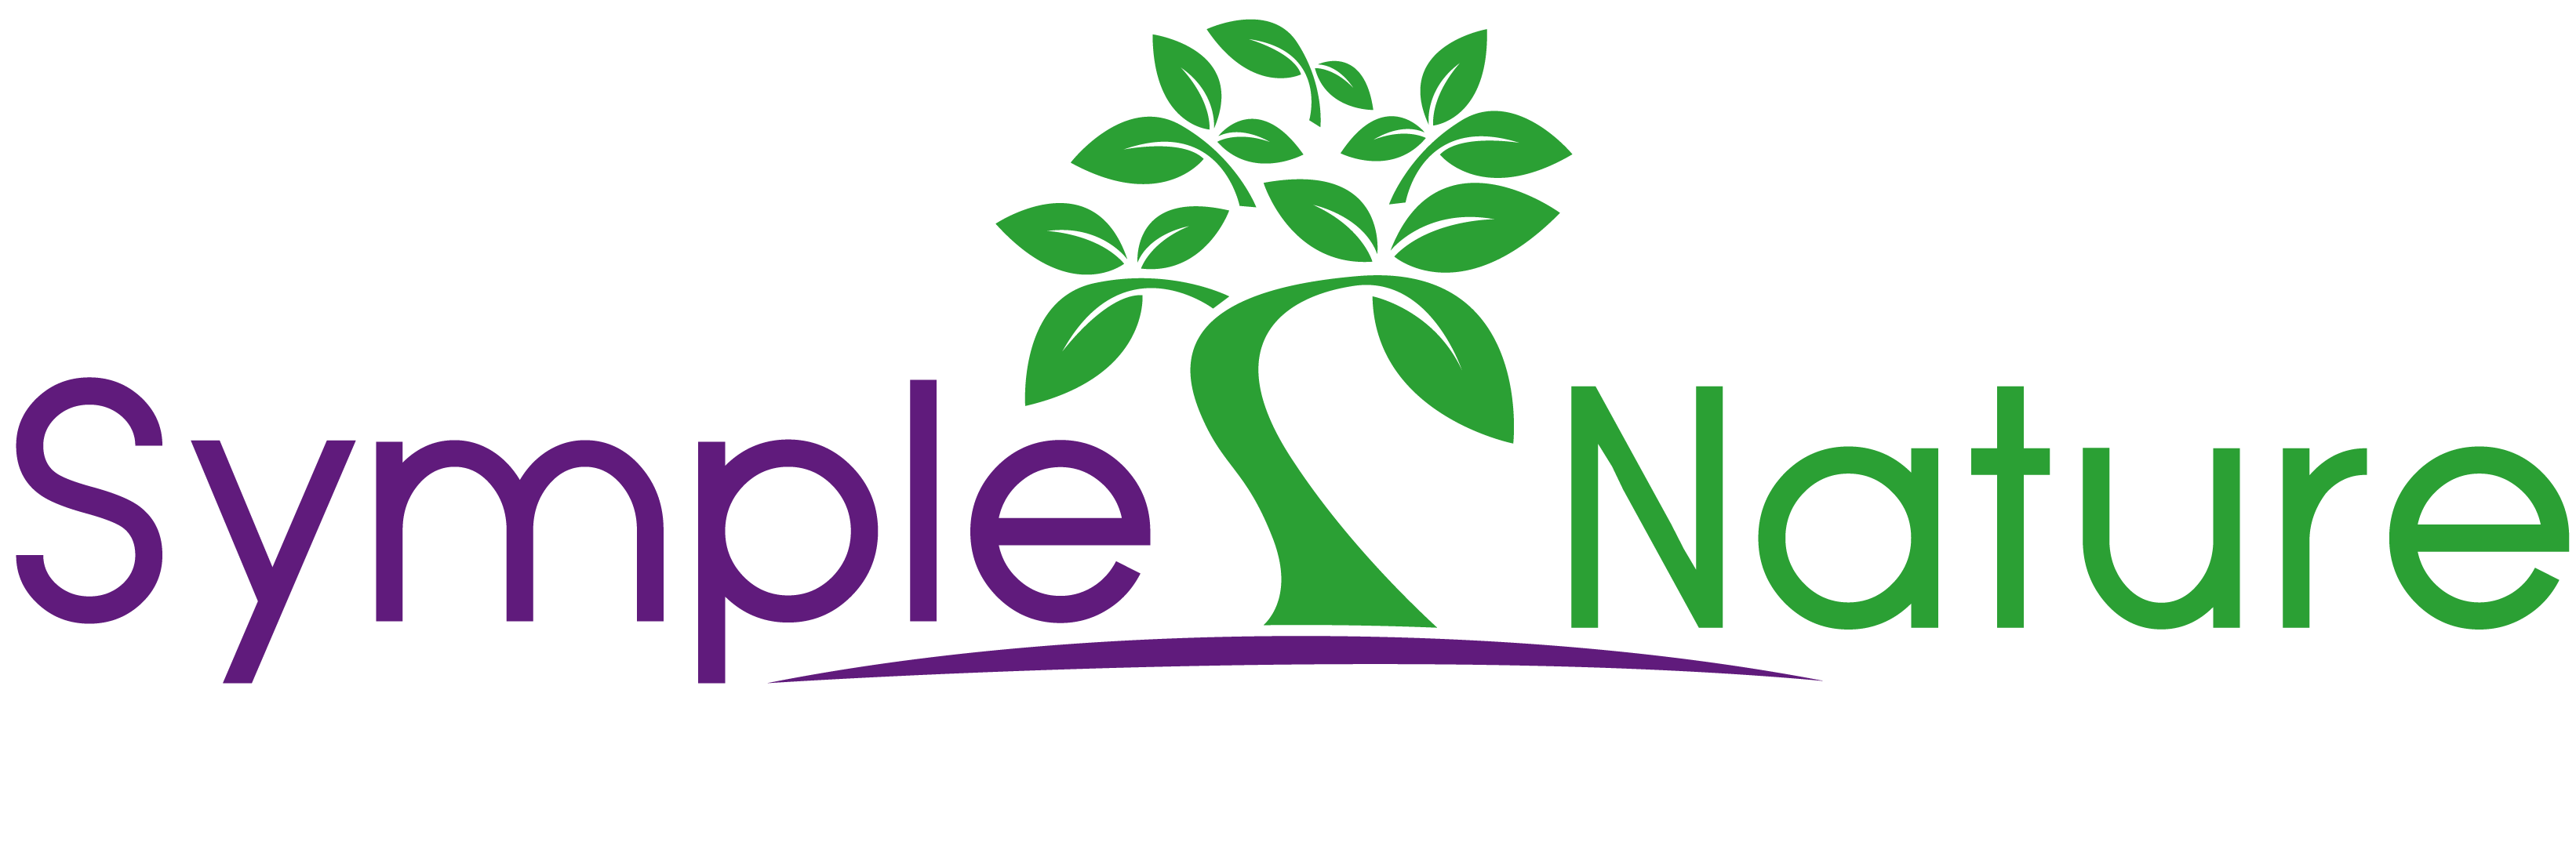 SYMPLE NATURE LOGO